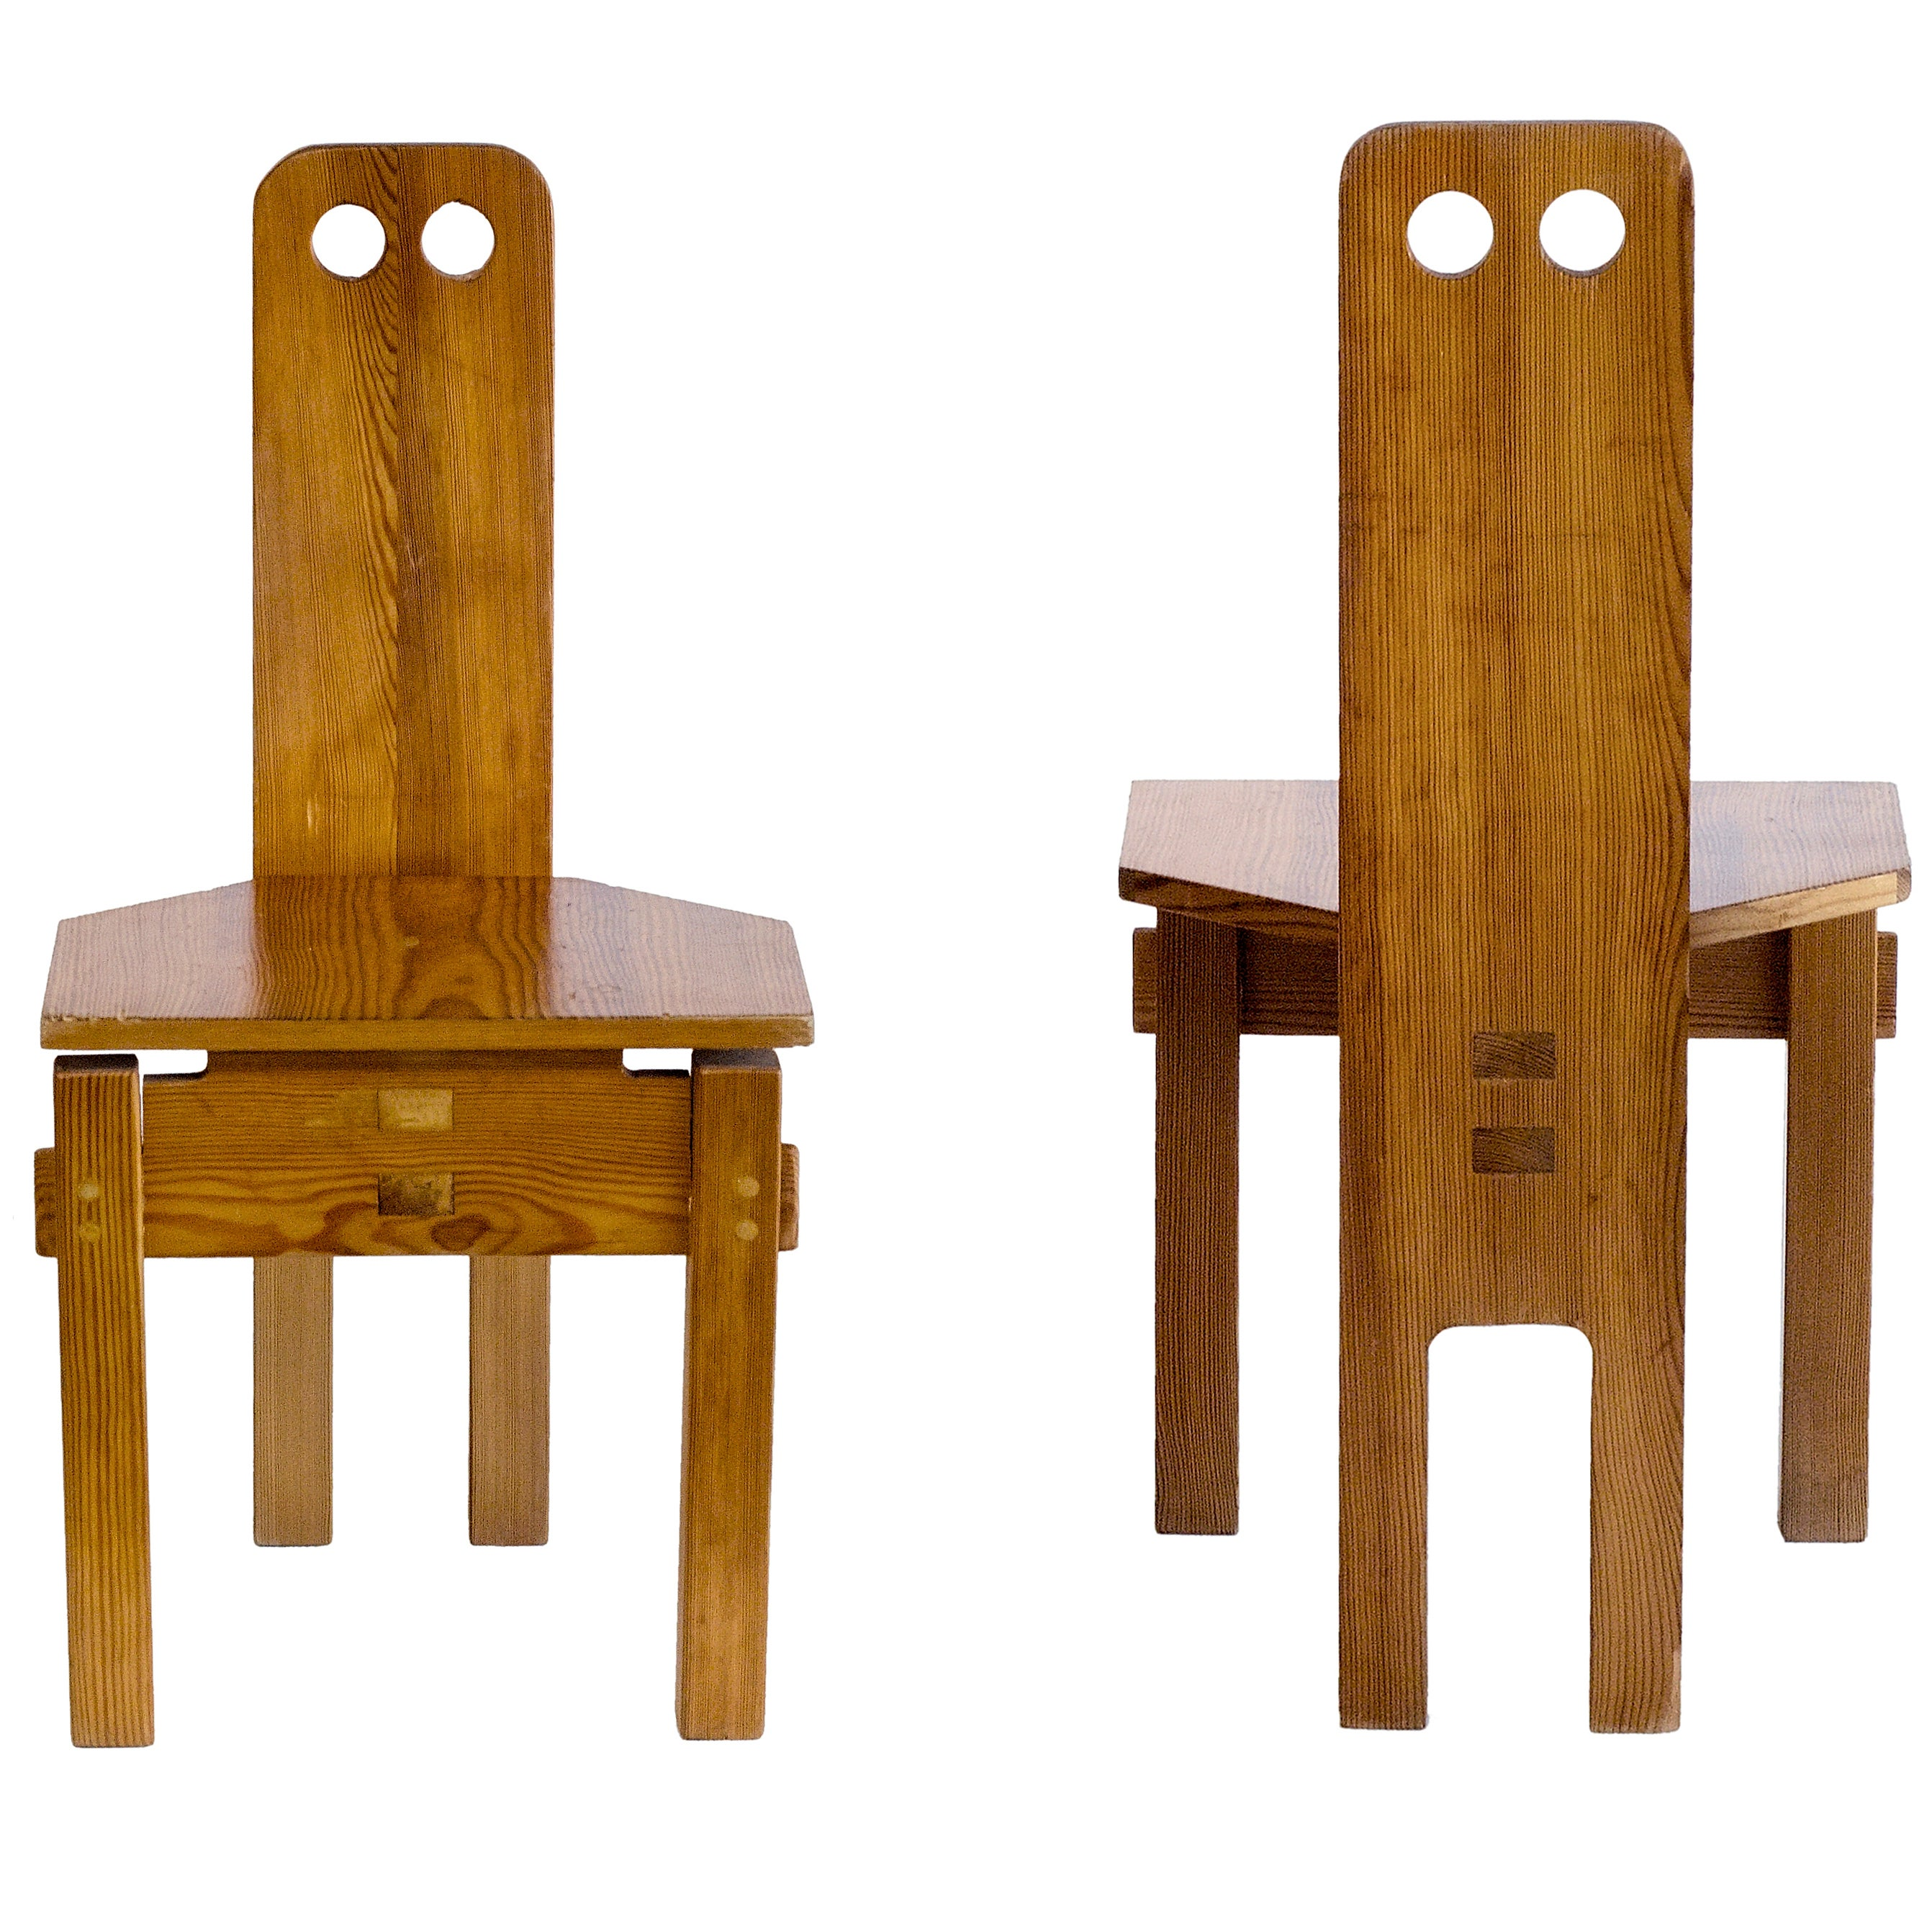 Pair Of Solid Wood Circle Cut Out Chairs By Ter Gullert Circa 1967 At 1stdibs